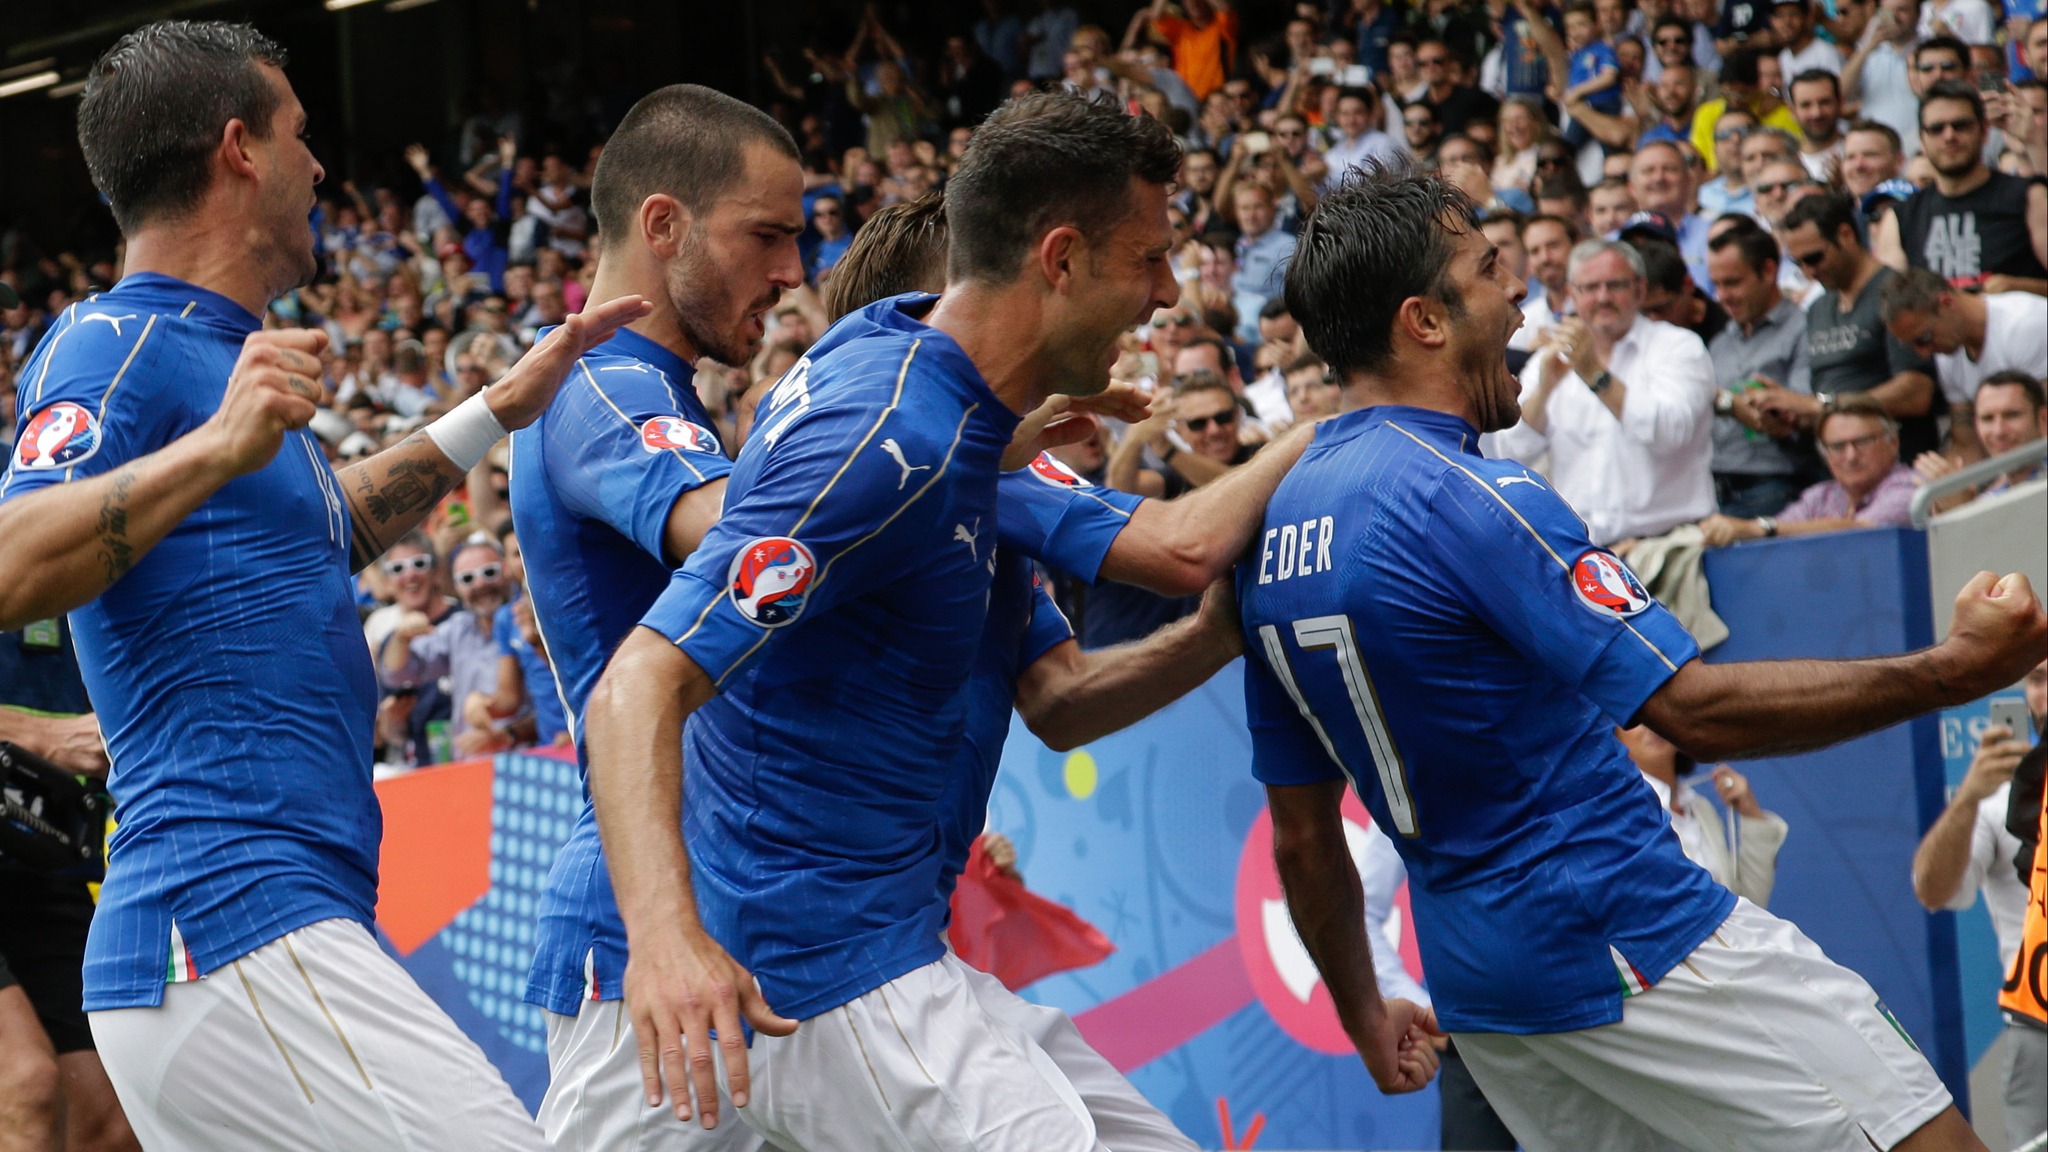 Italy's Eder, right, celebrates after scoring the opening goal during the Euro 2016 Group E soccer match between Italy and Sweden at the Stadium municipal in Toulouse, France, Friday, June 17, 2016. (AP Photo/Andrew Medichini)